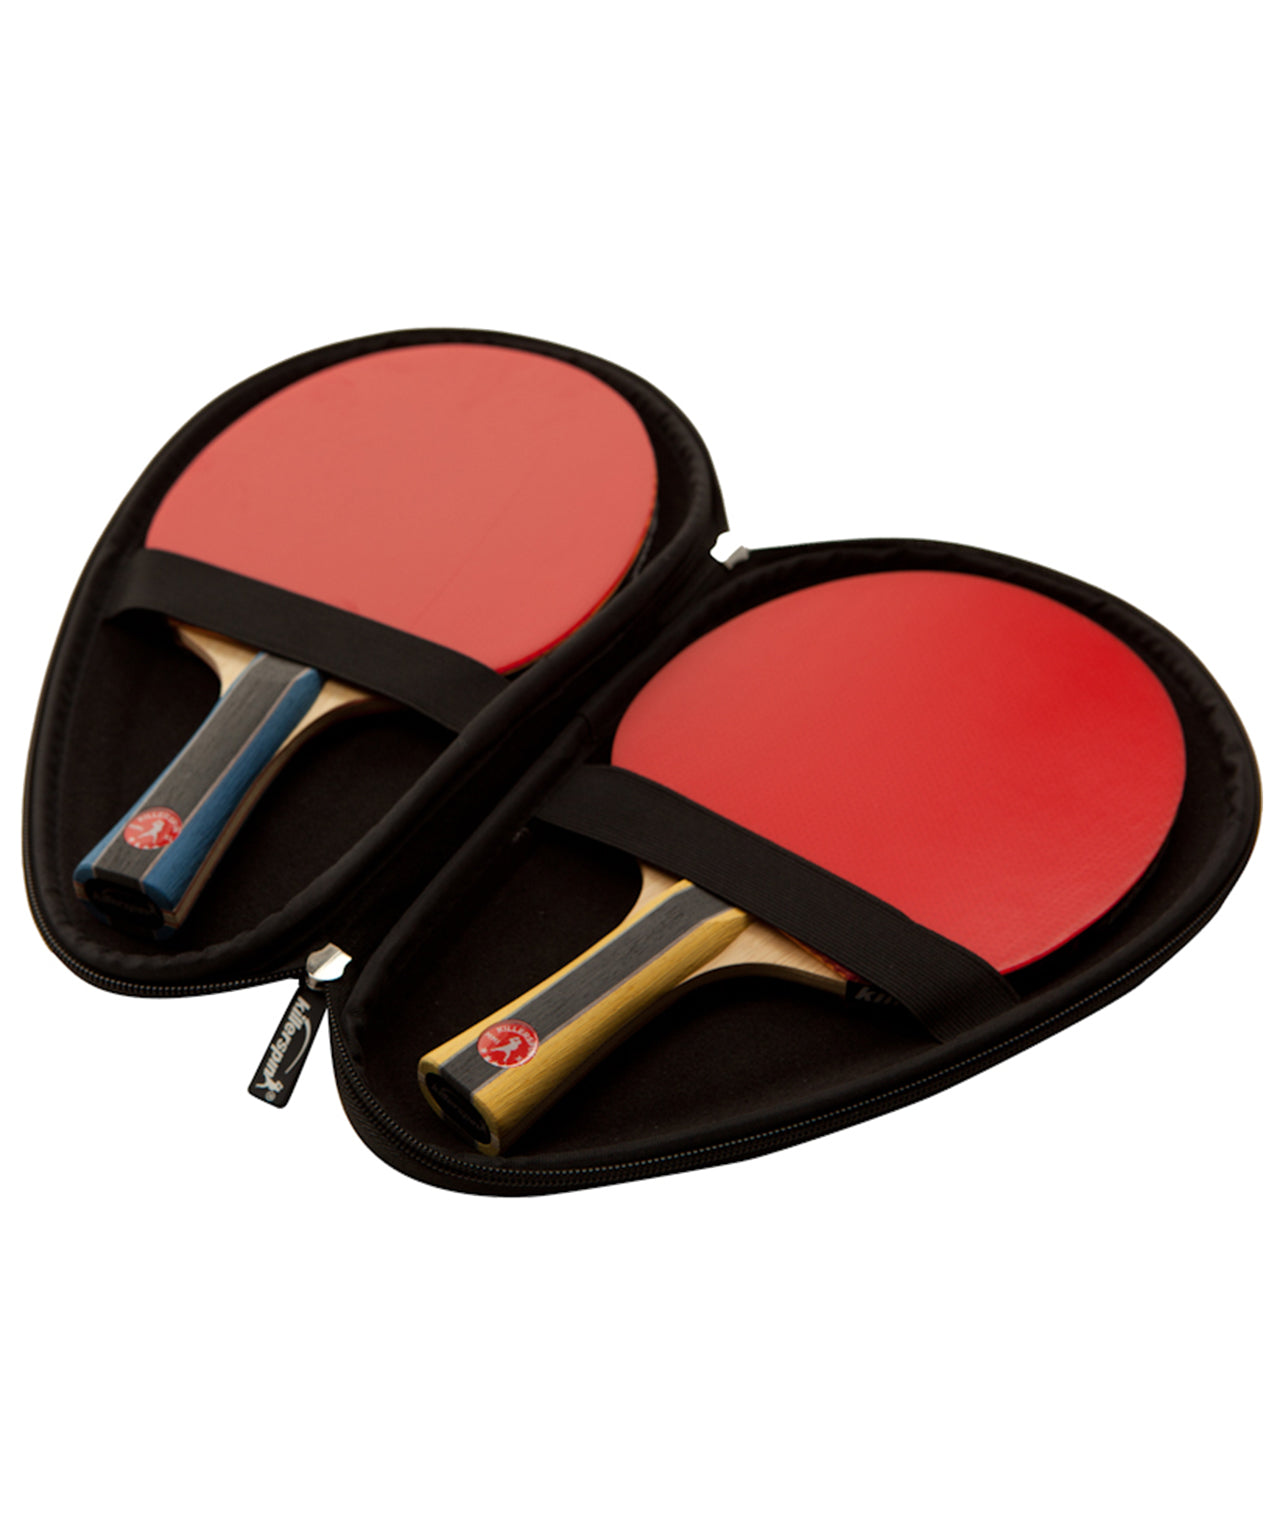 Killerspin Hard Ping Pong Racket Case - Paddle Pocket